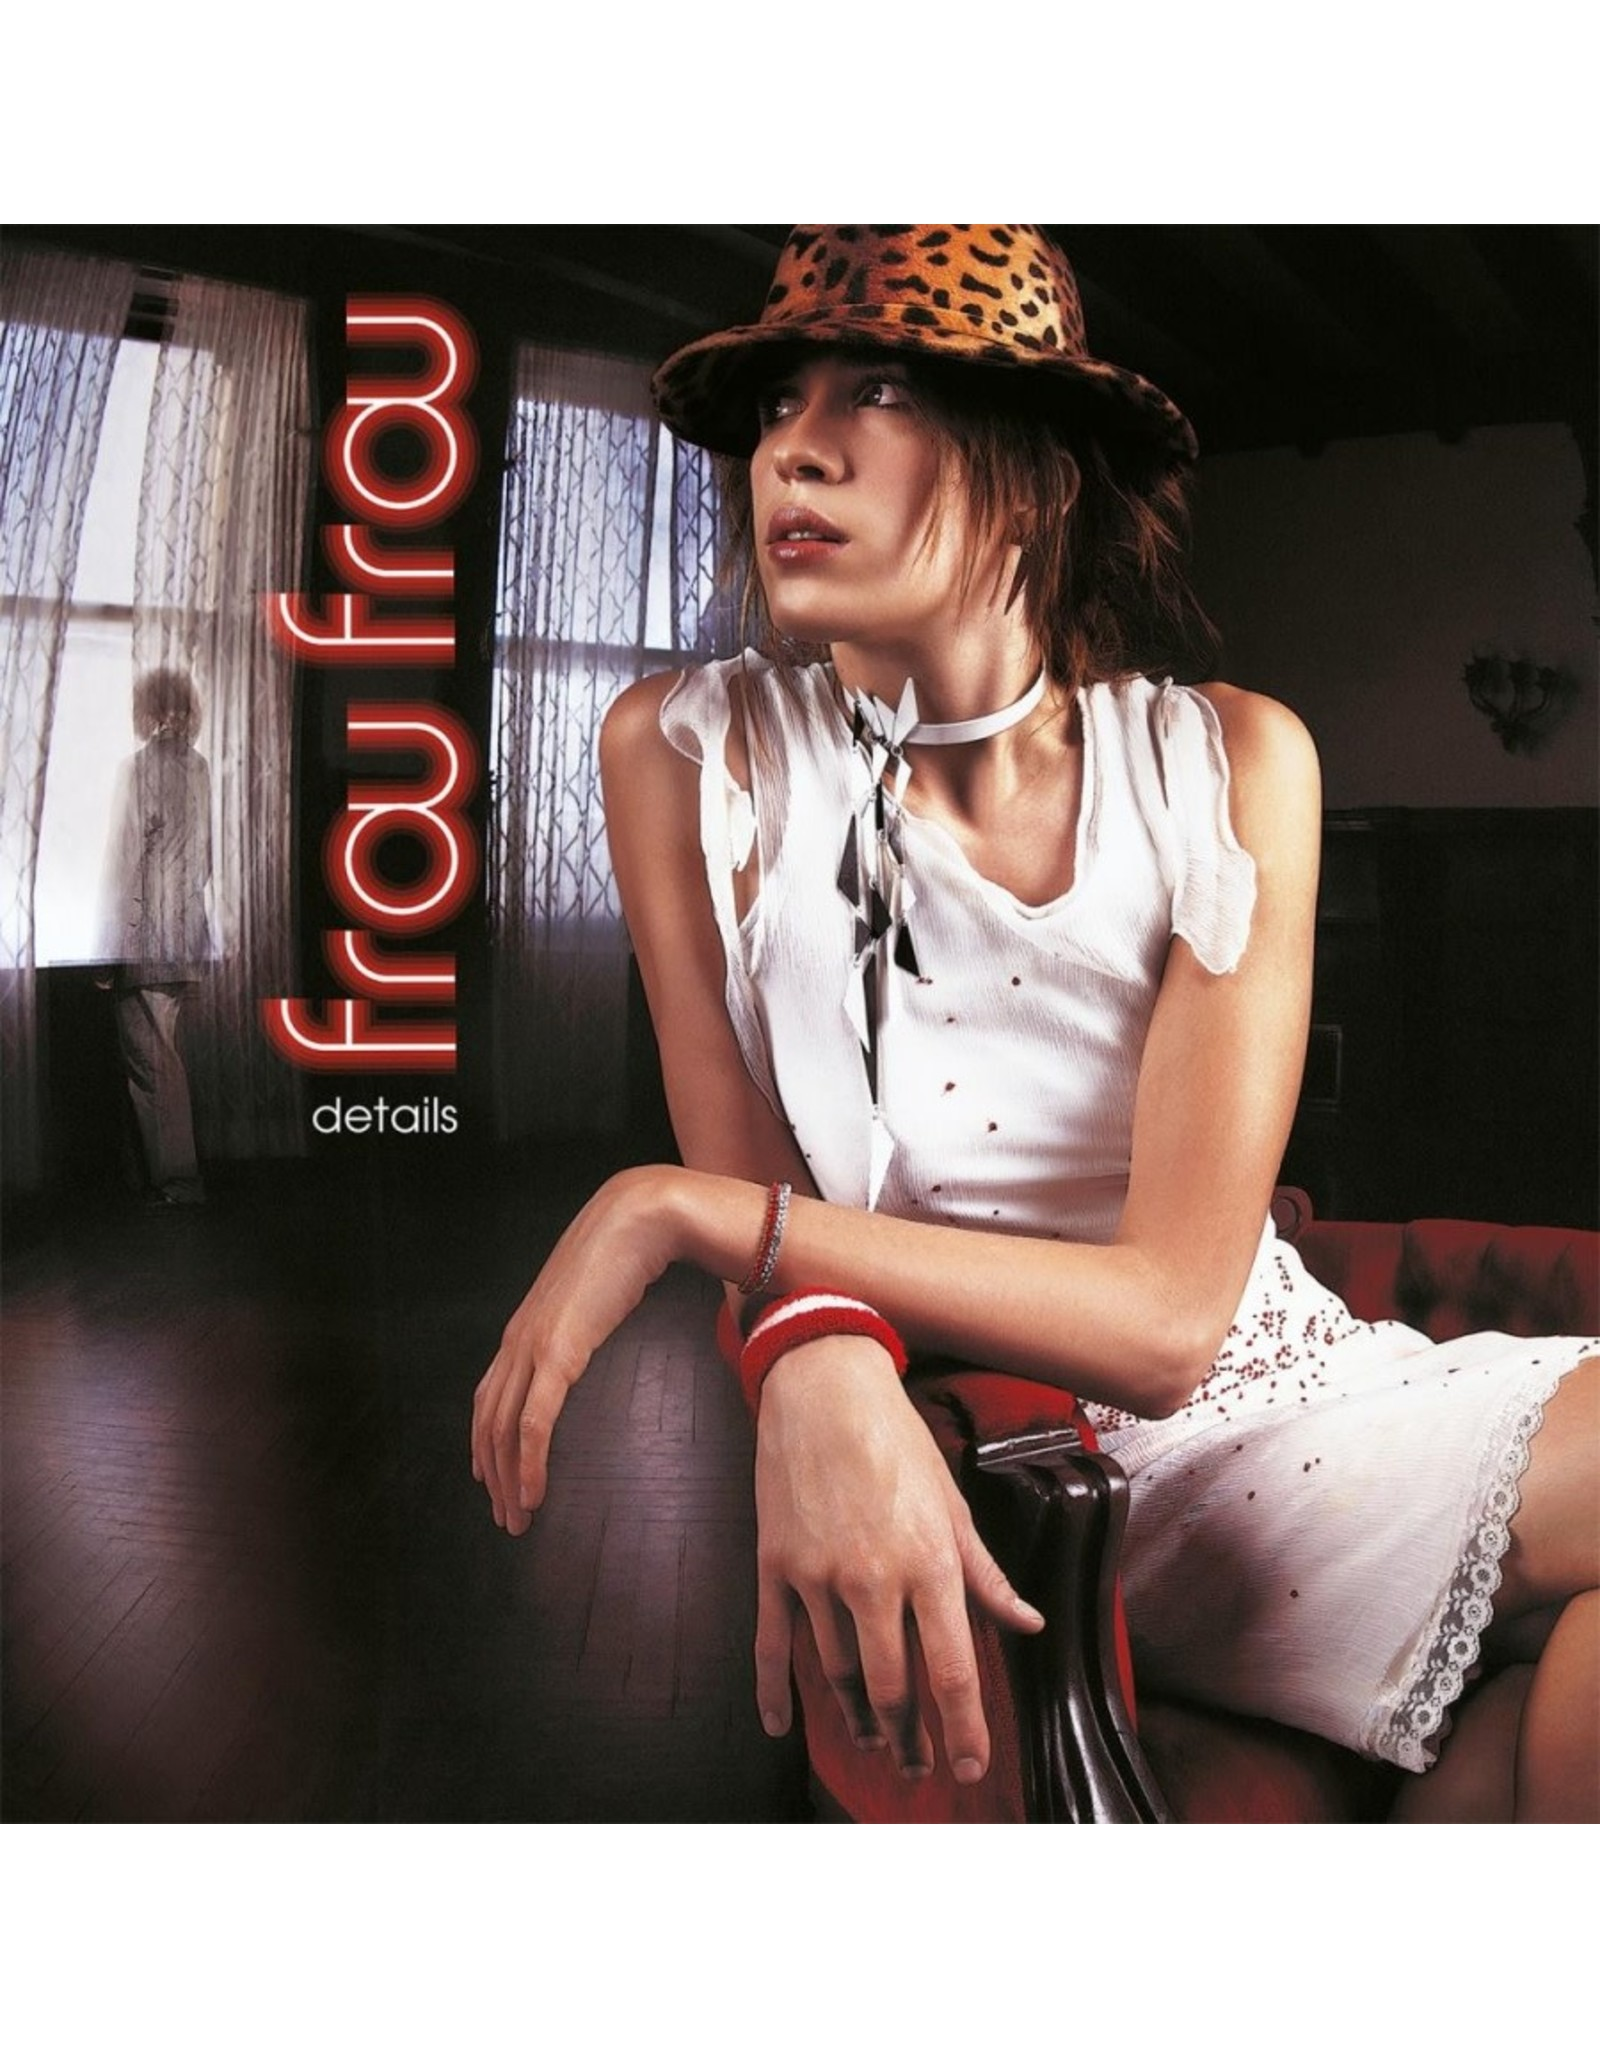 Frou Frou - Details (Music On Vinyl)